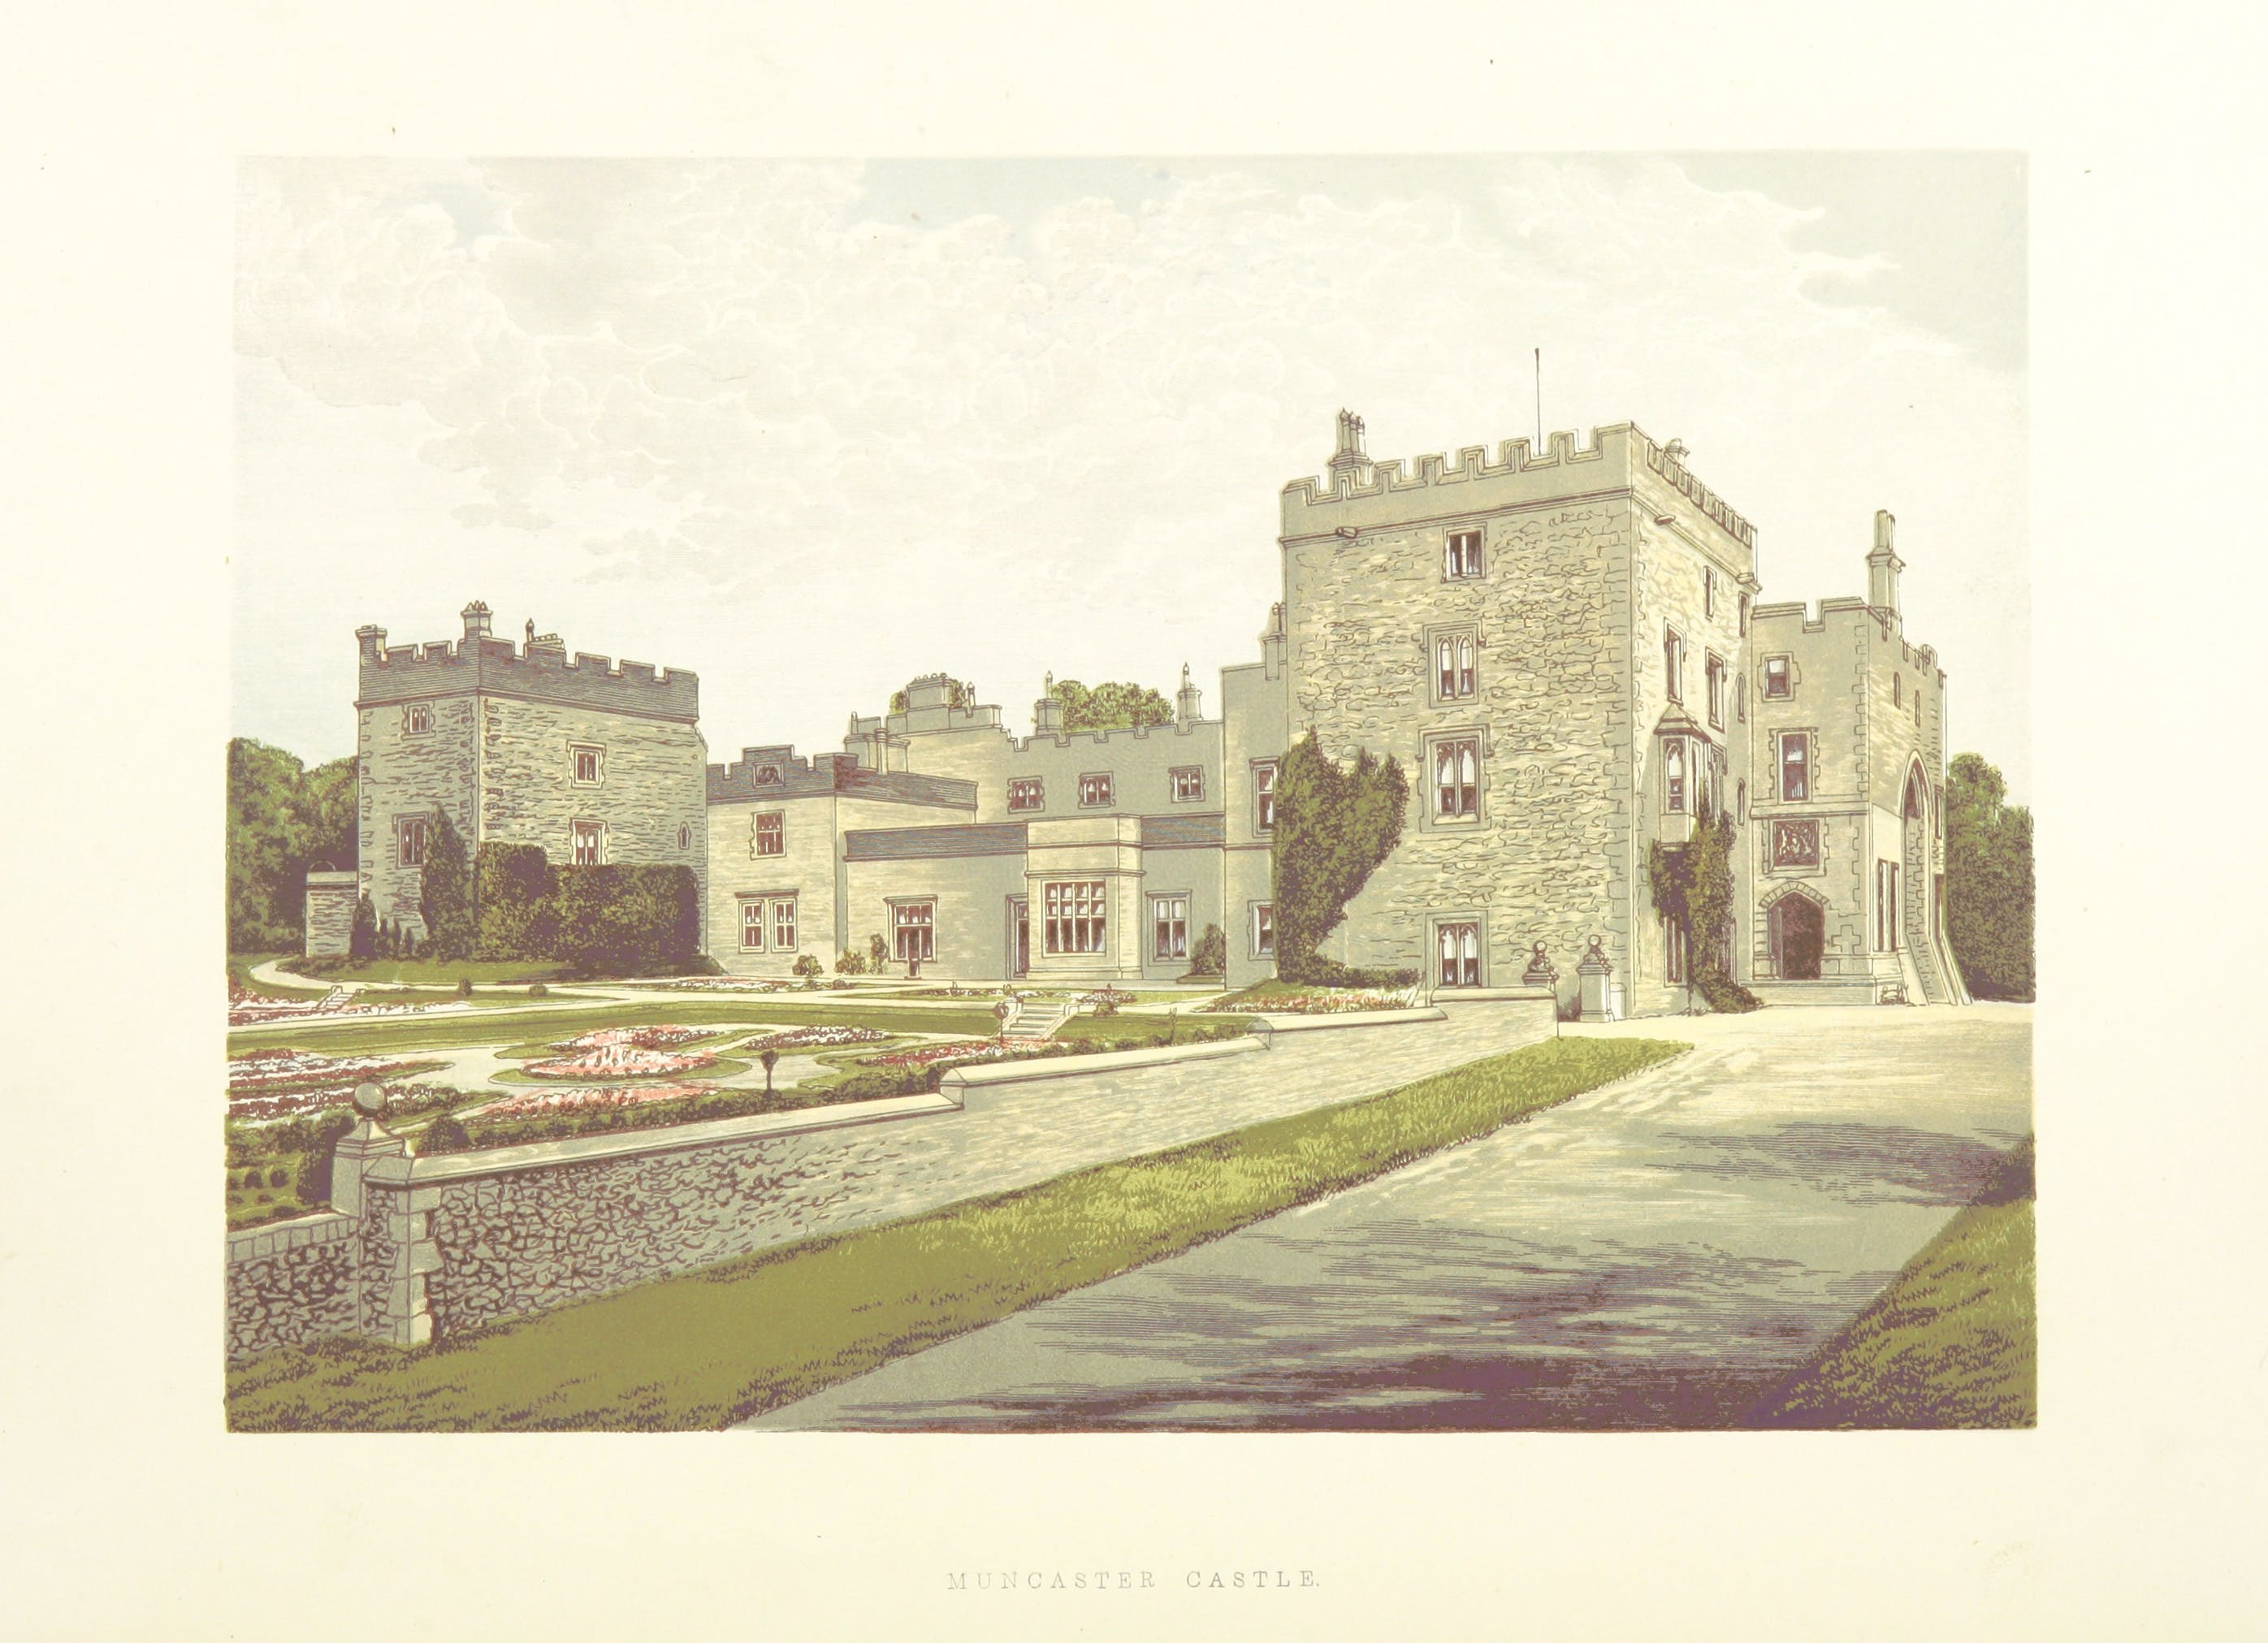 A color drawing of Muncaster Castle in England, including formal gardens